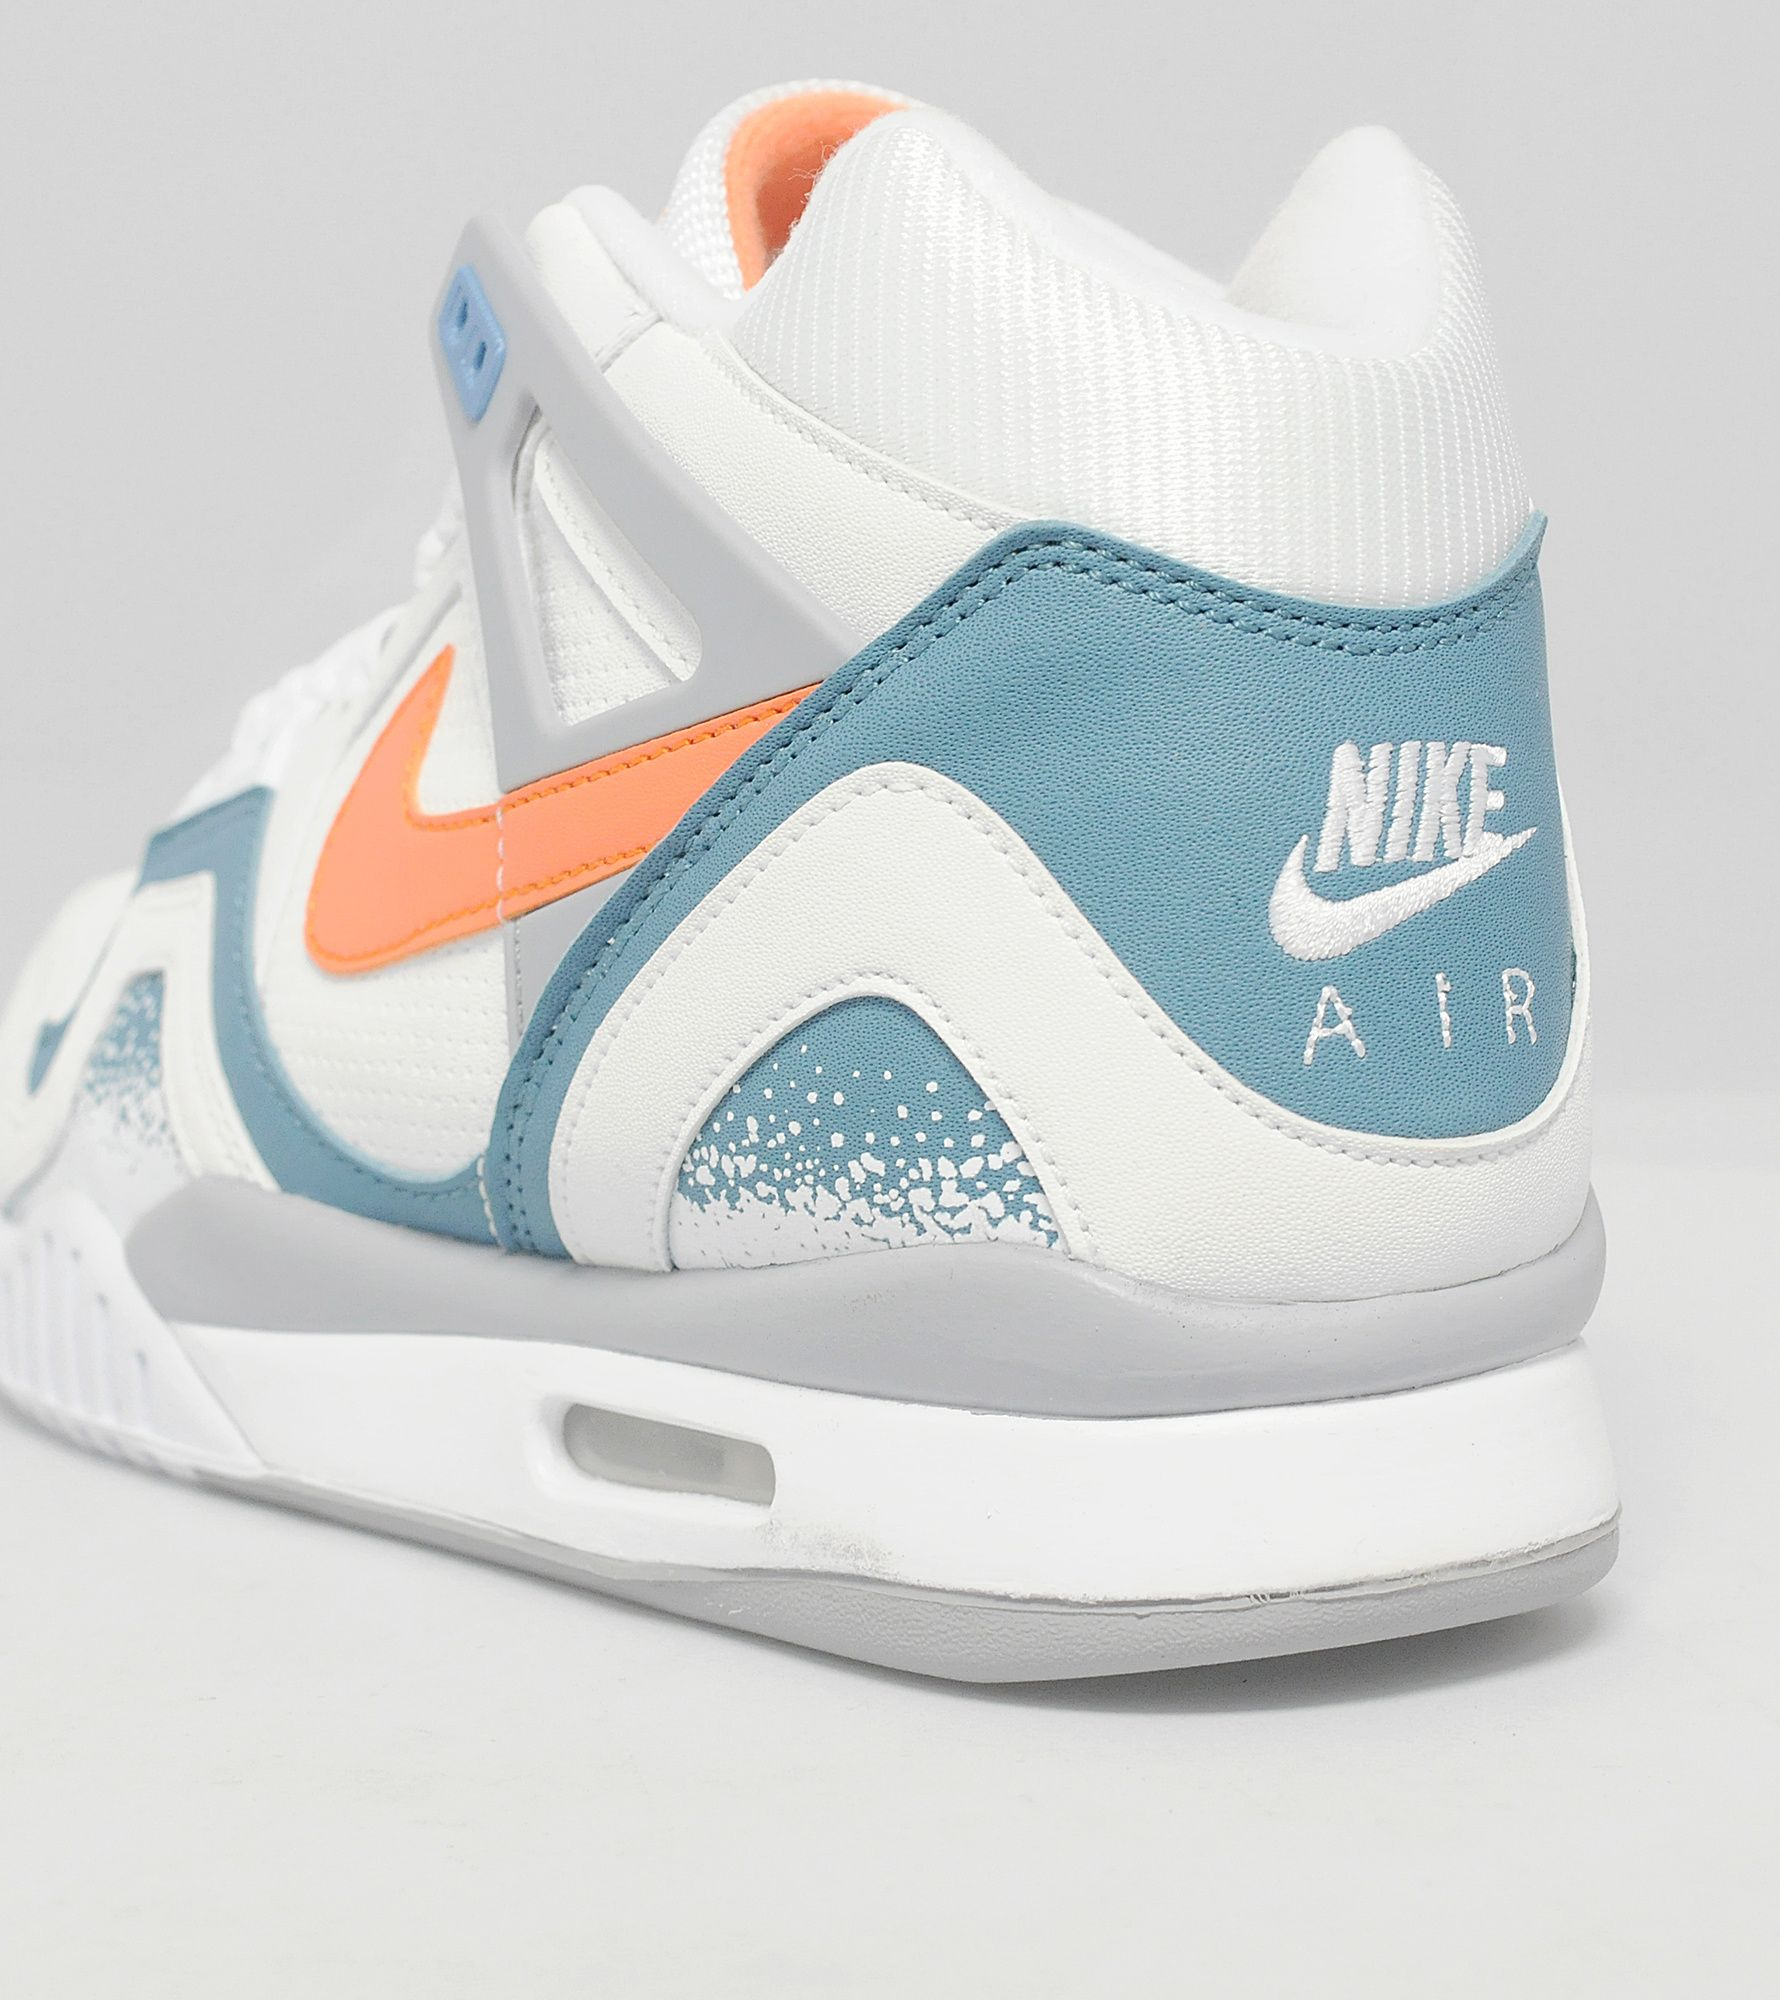 Nike Air Tech Challenge II Quickstrike 'Clay Blue'